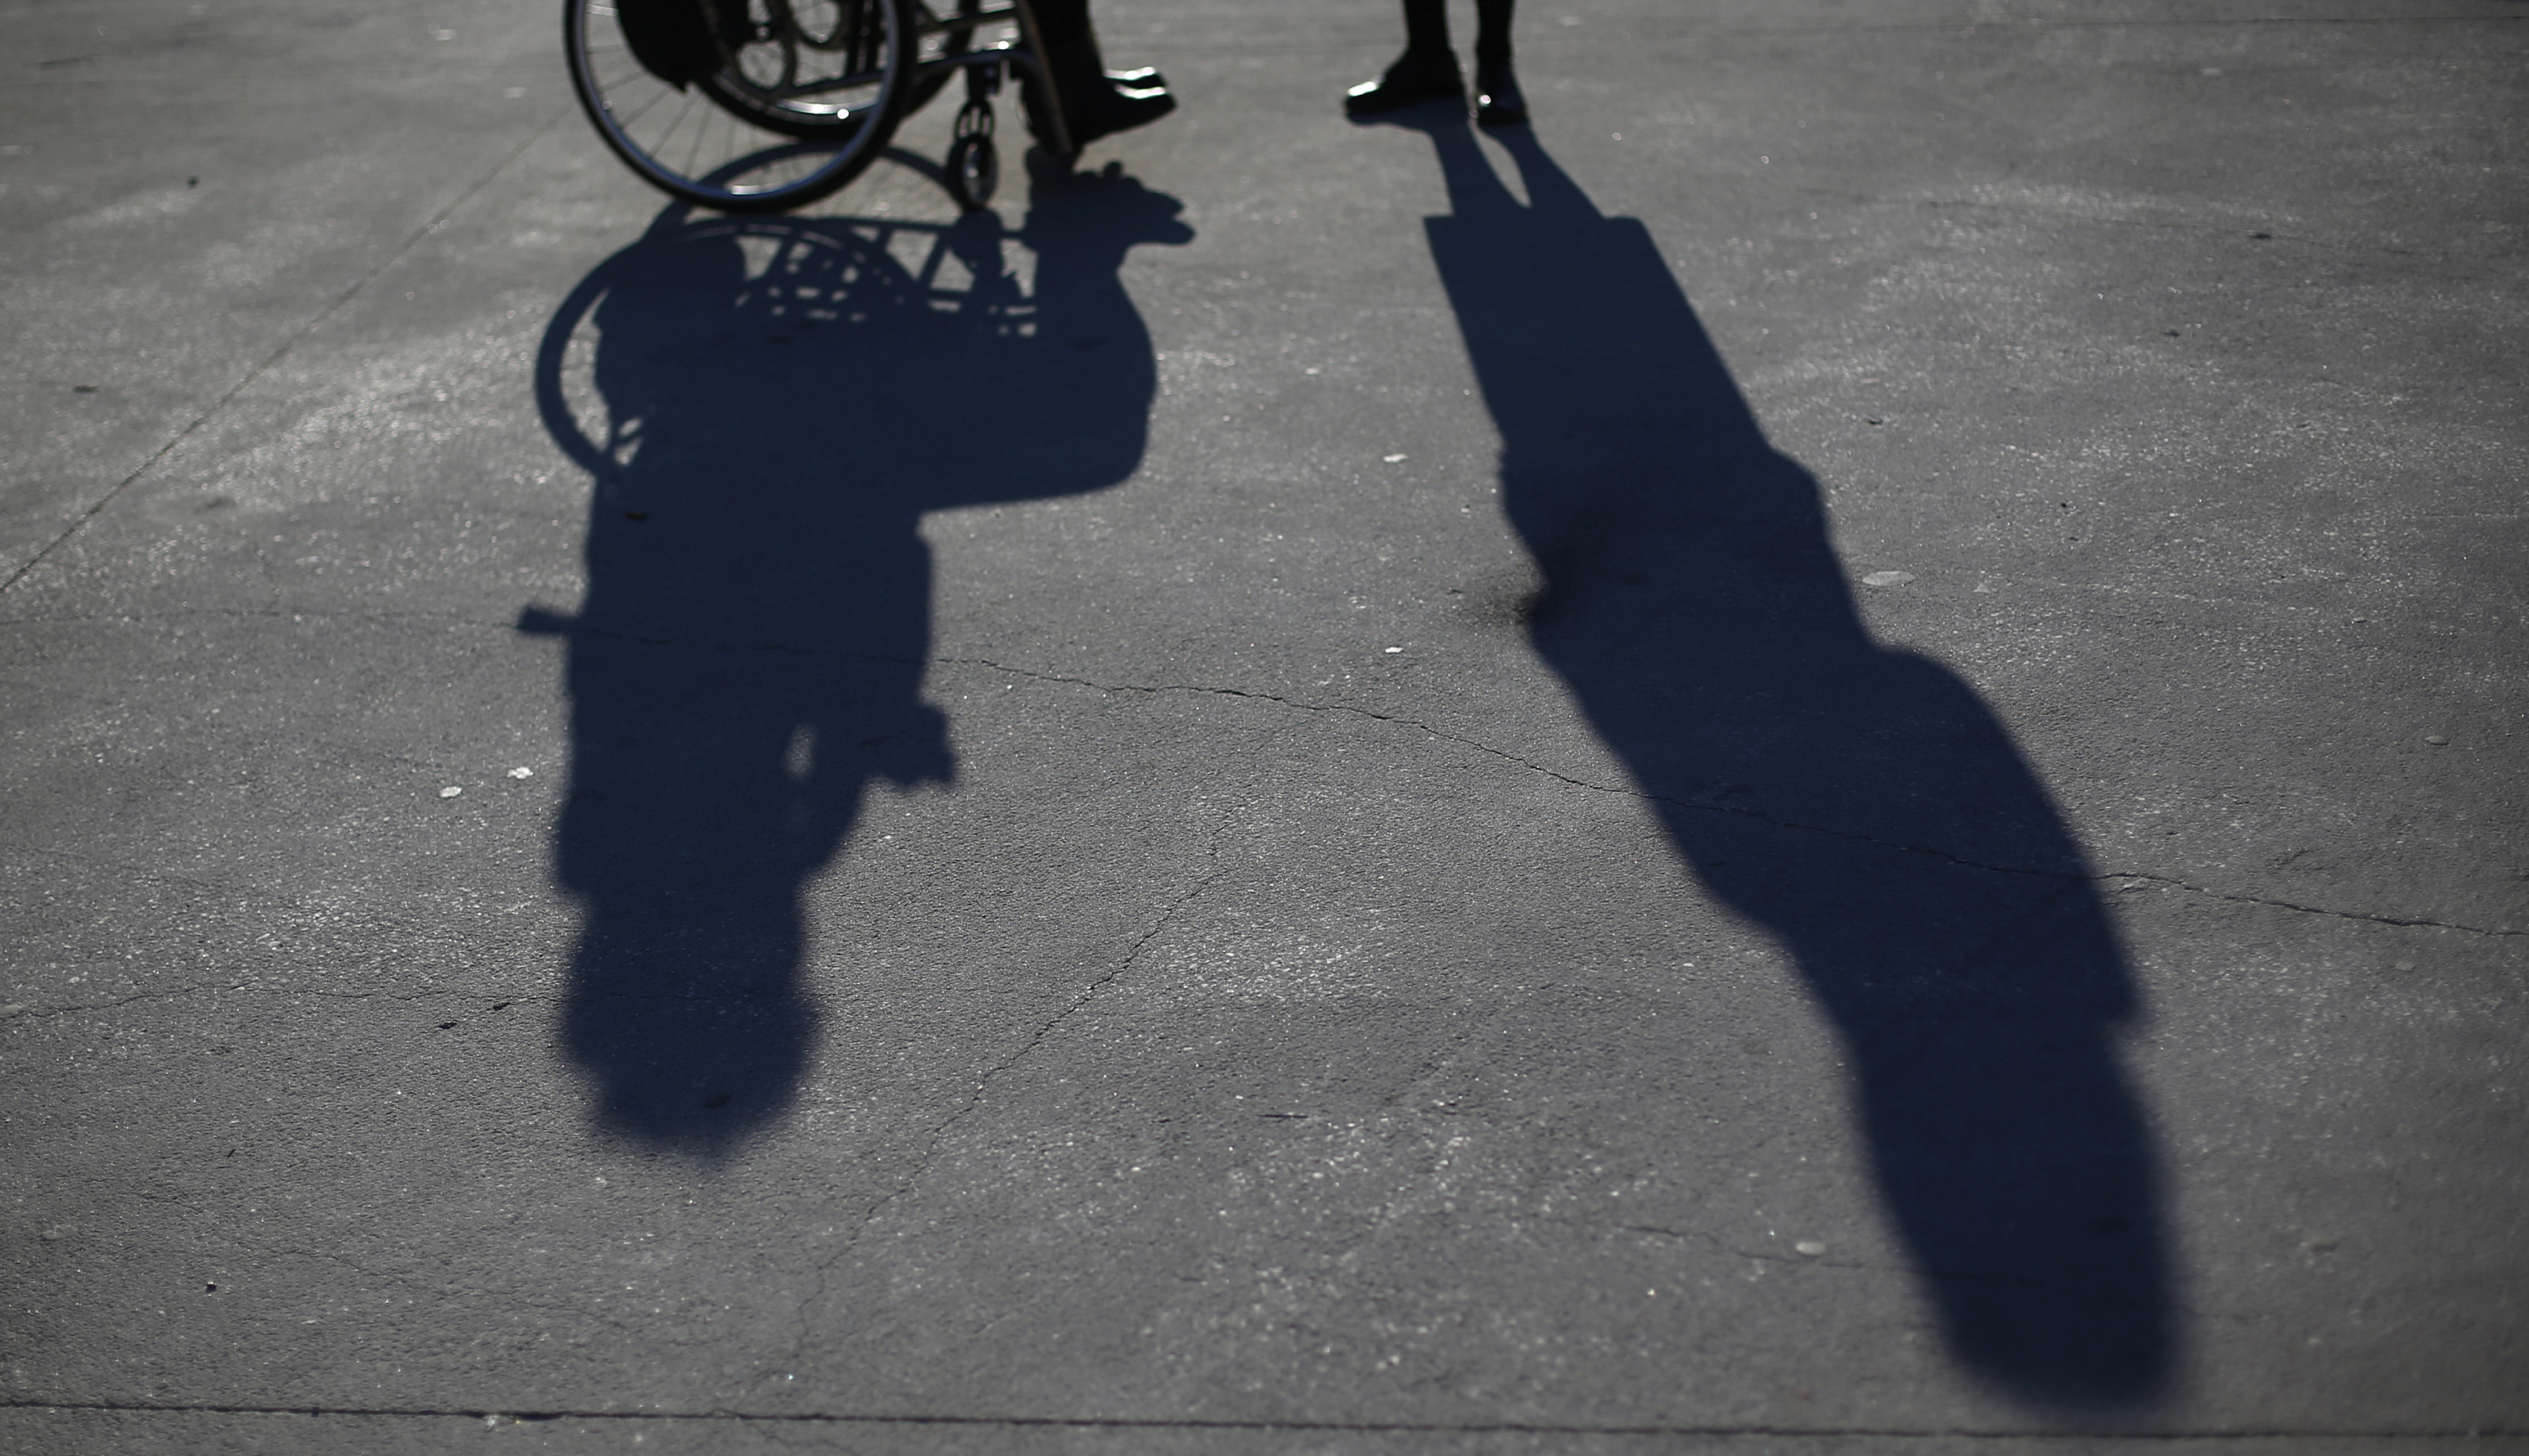 a shadow of a wheelchair user on the pavement